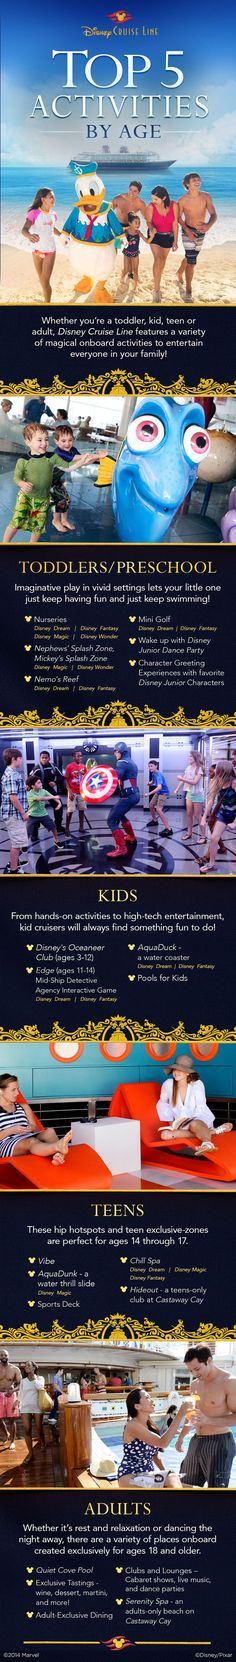 Check out these top 5 activities by age on a Disney Cruise vacation! Our Laughing Place Travel is ready to help you plan your magical Disney vacation because at OLP Travel, we put the Pixie Dust in Concierge Service! Disney Cruise Line, Disney Fun, Disney 2017, Disney Stuff, Disney Magic, Walt Disney, Disney Destinations, Disney Vacations, Disney Trips